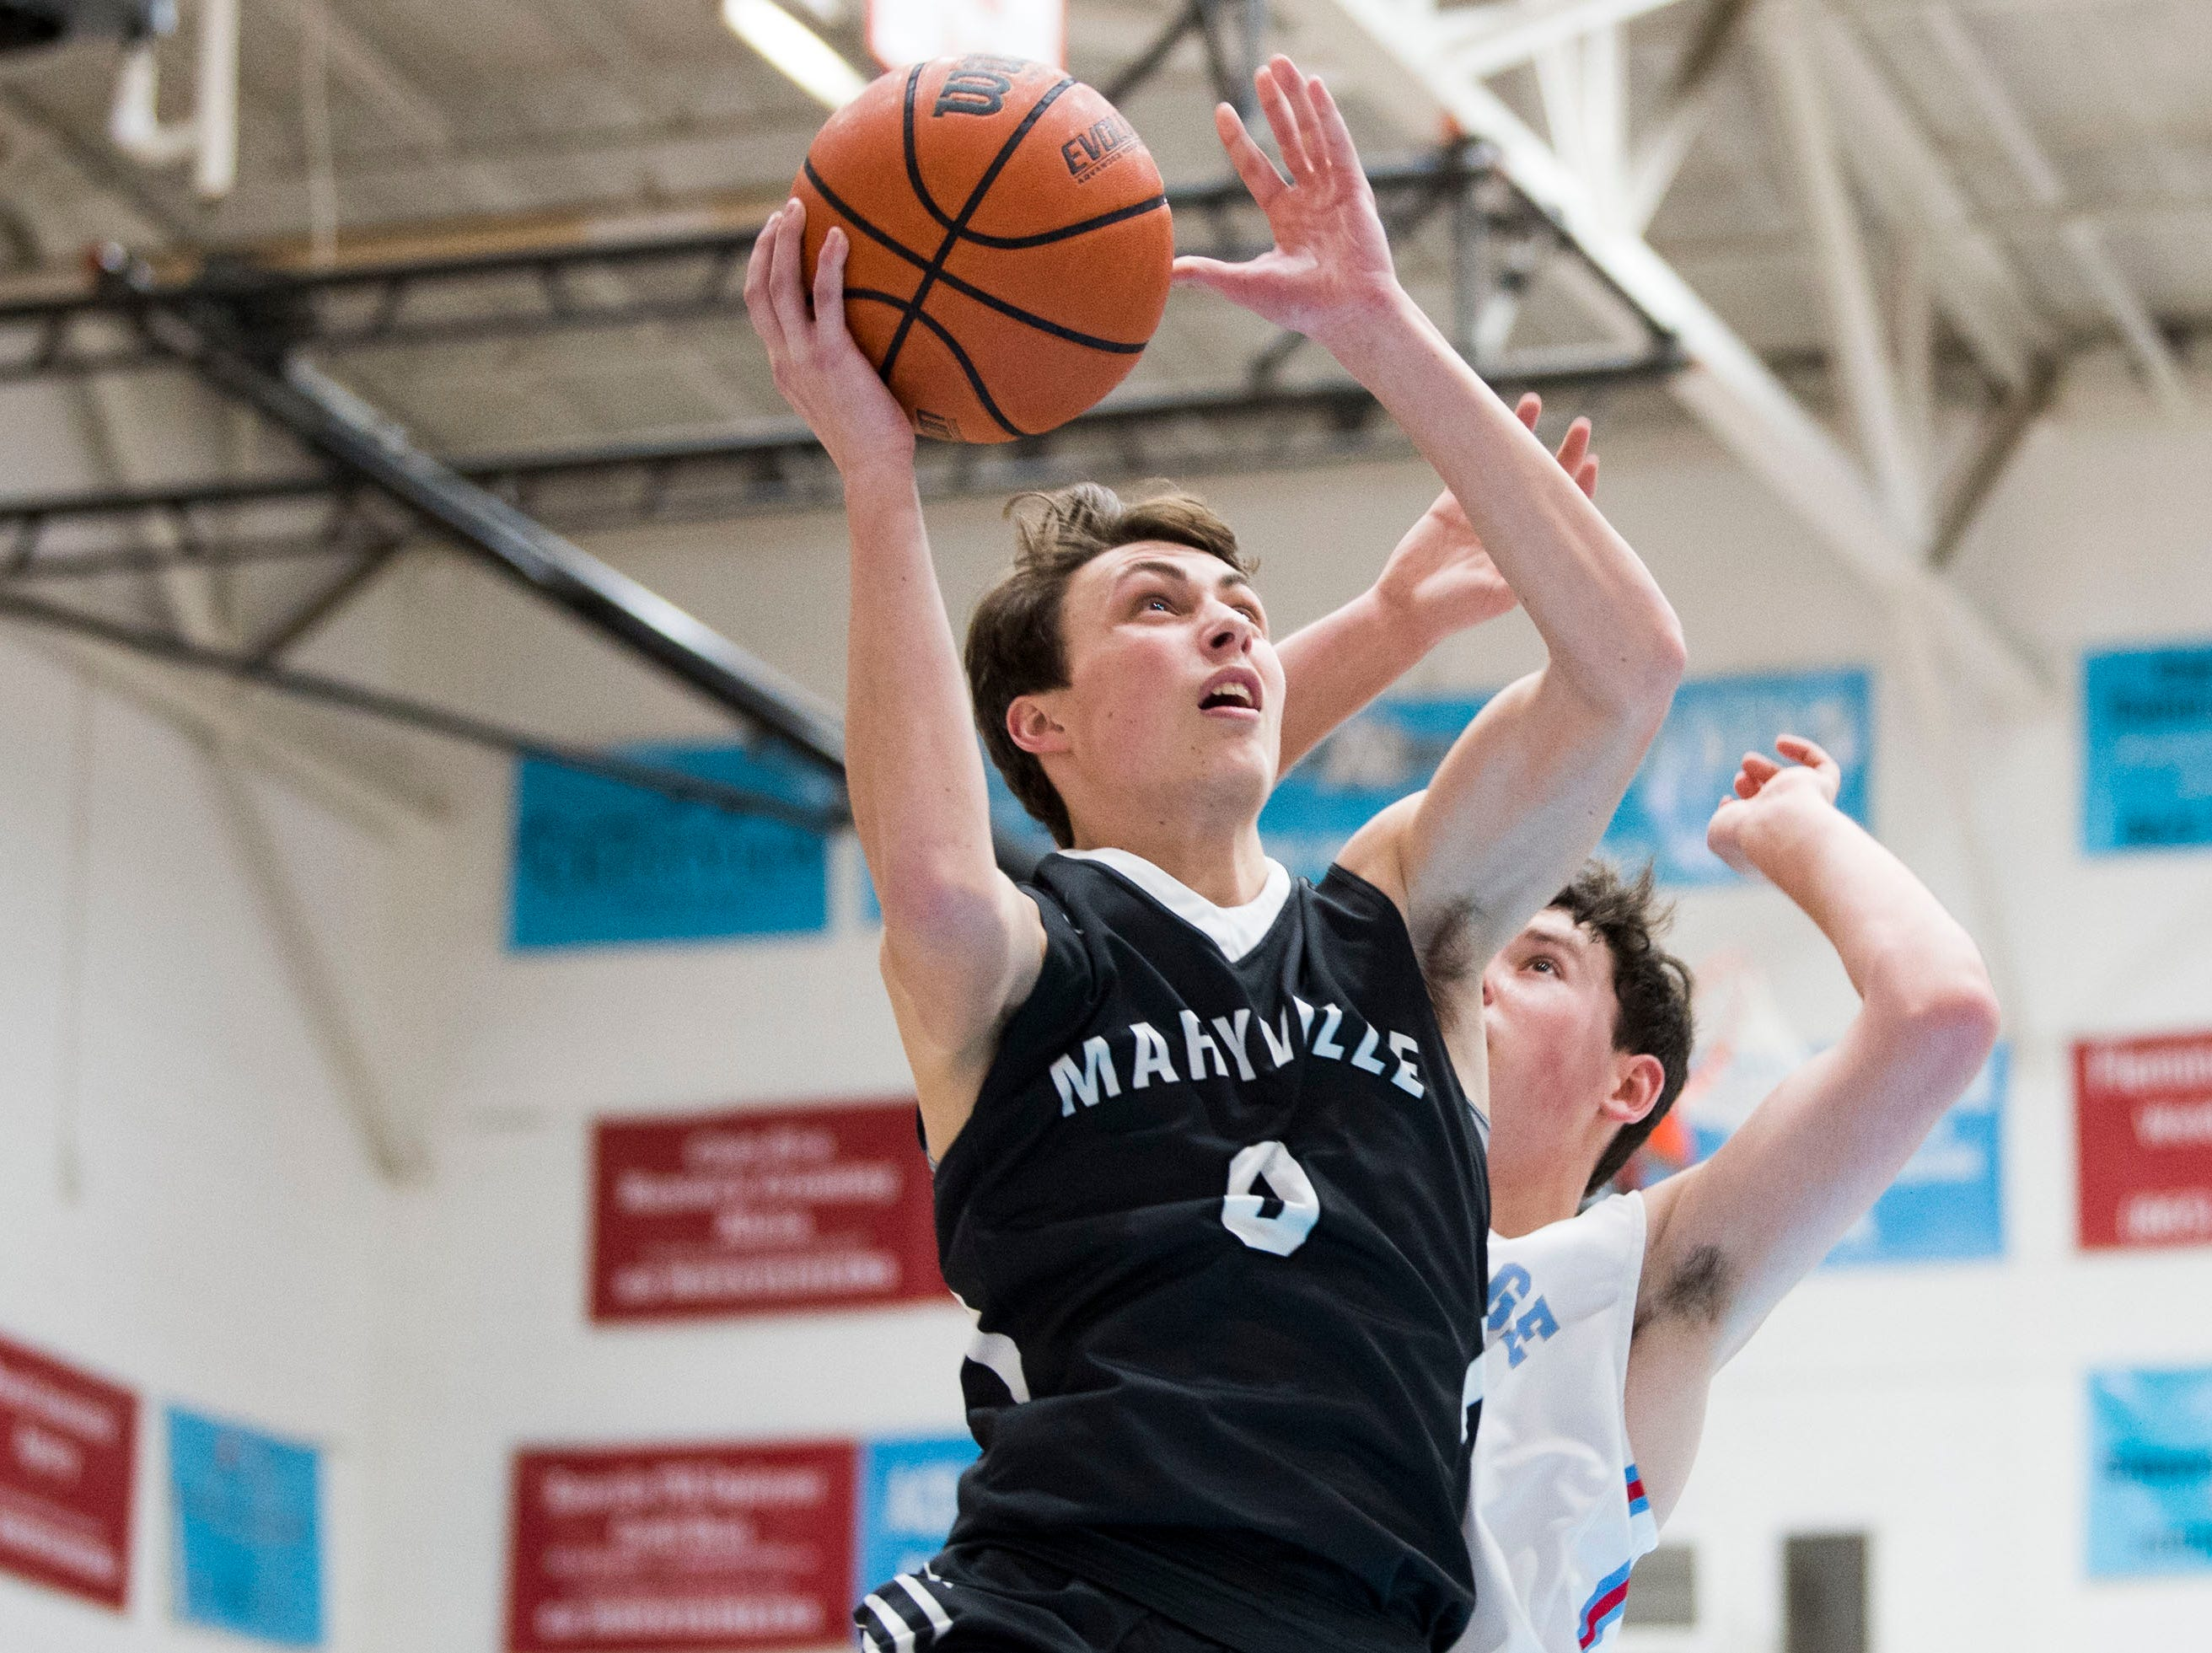 Maryville's Drew Crowder (0) takes a shot during a high school basketball game between Maryville and Heritage at Heritage Friday, Jan. 4, 2019. Both Maryville boys and girls teams beat Heritage.